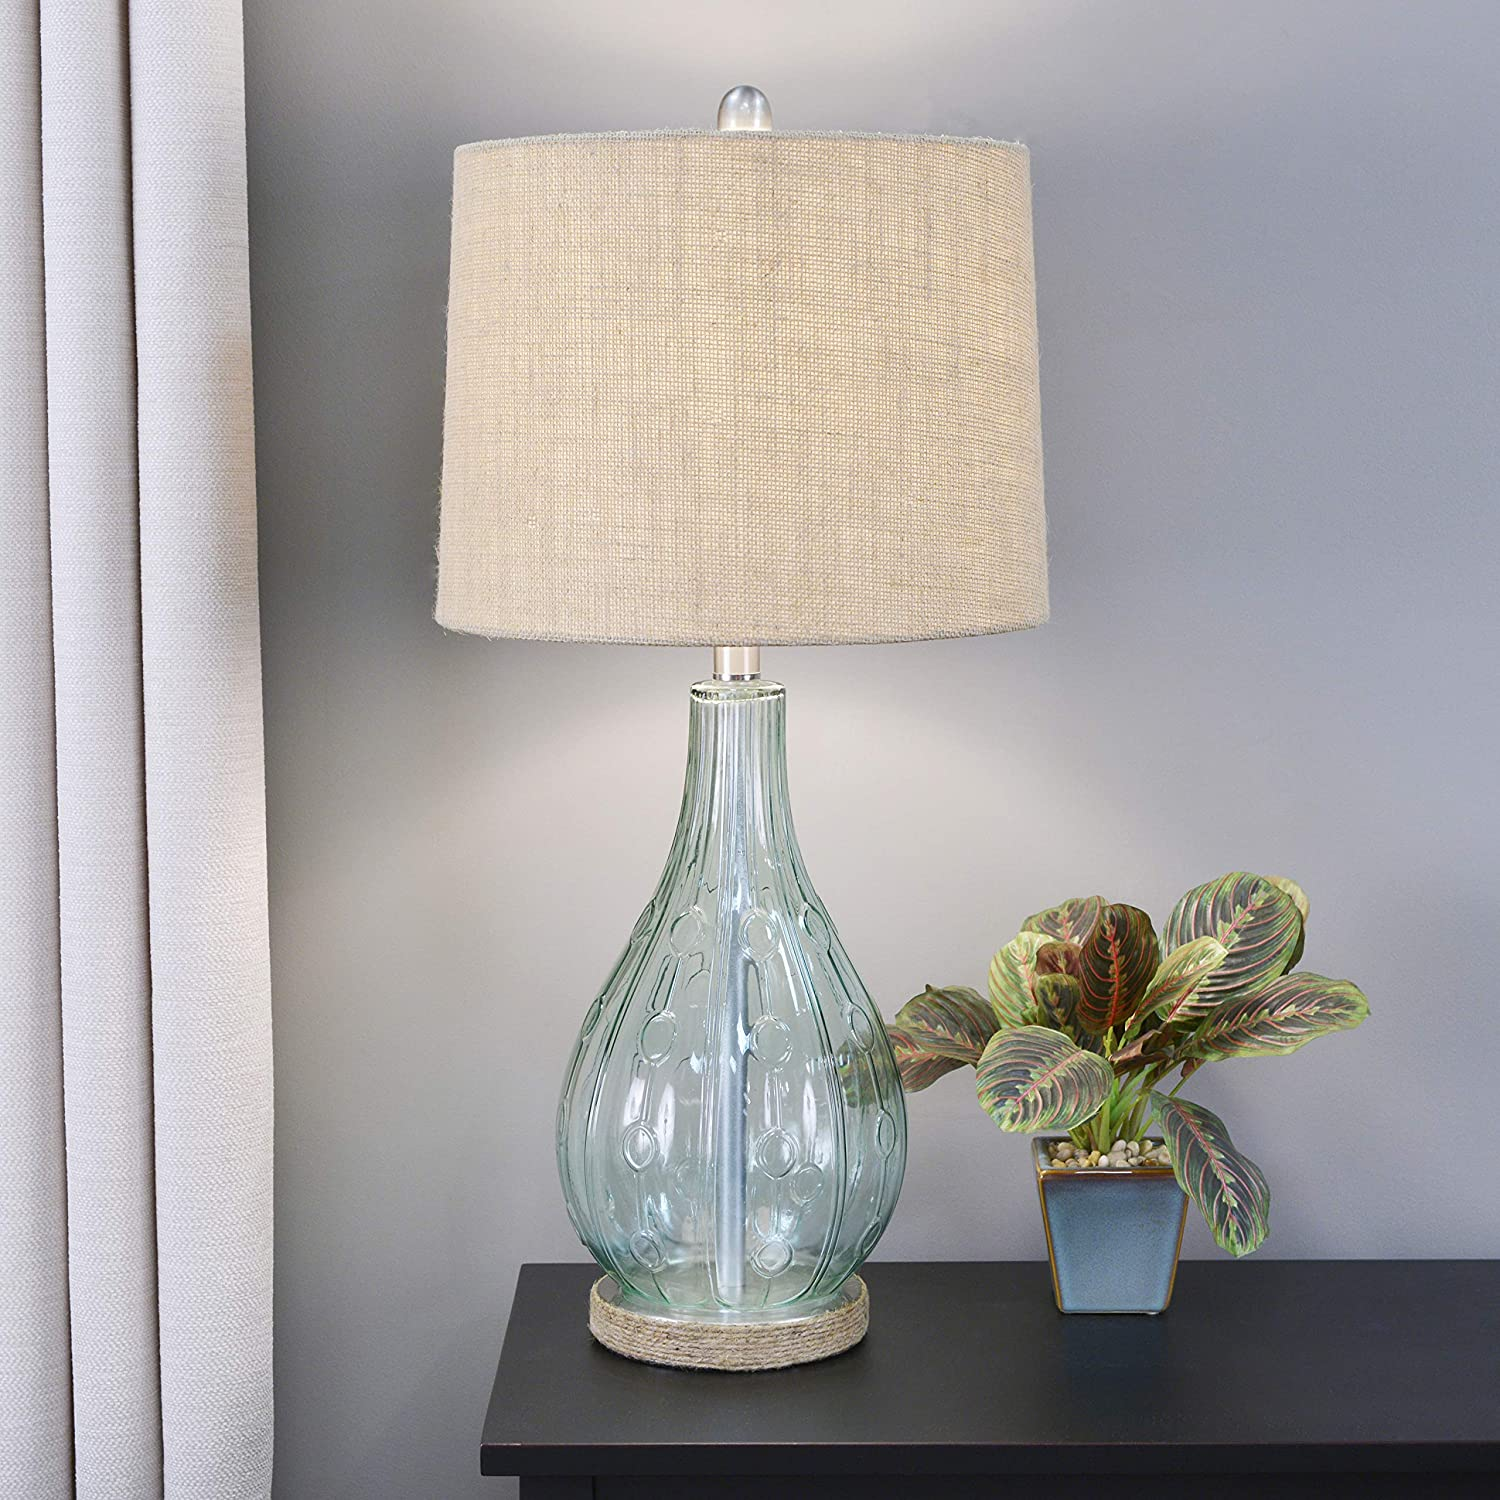 Décor Therapy Table lamp